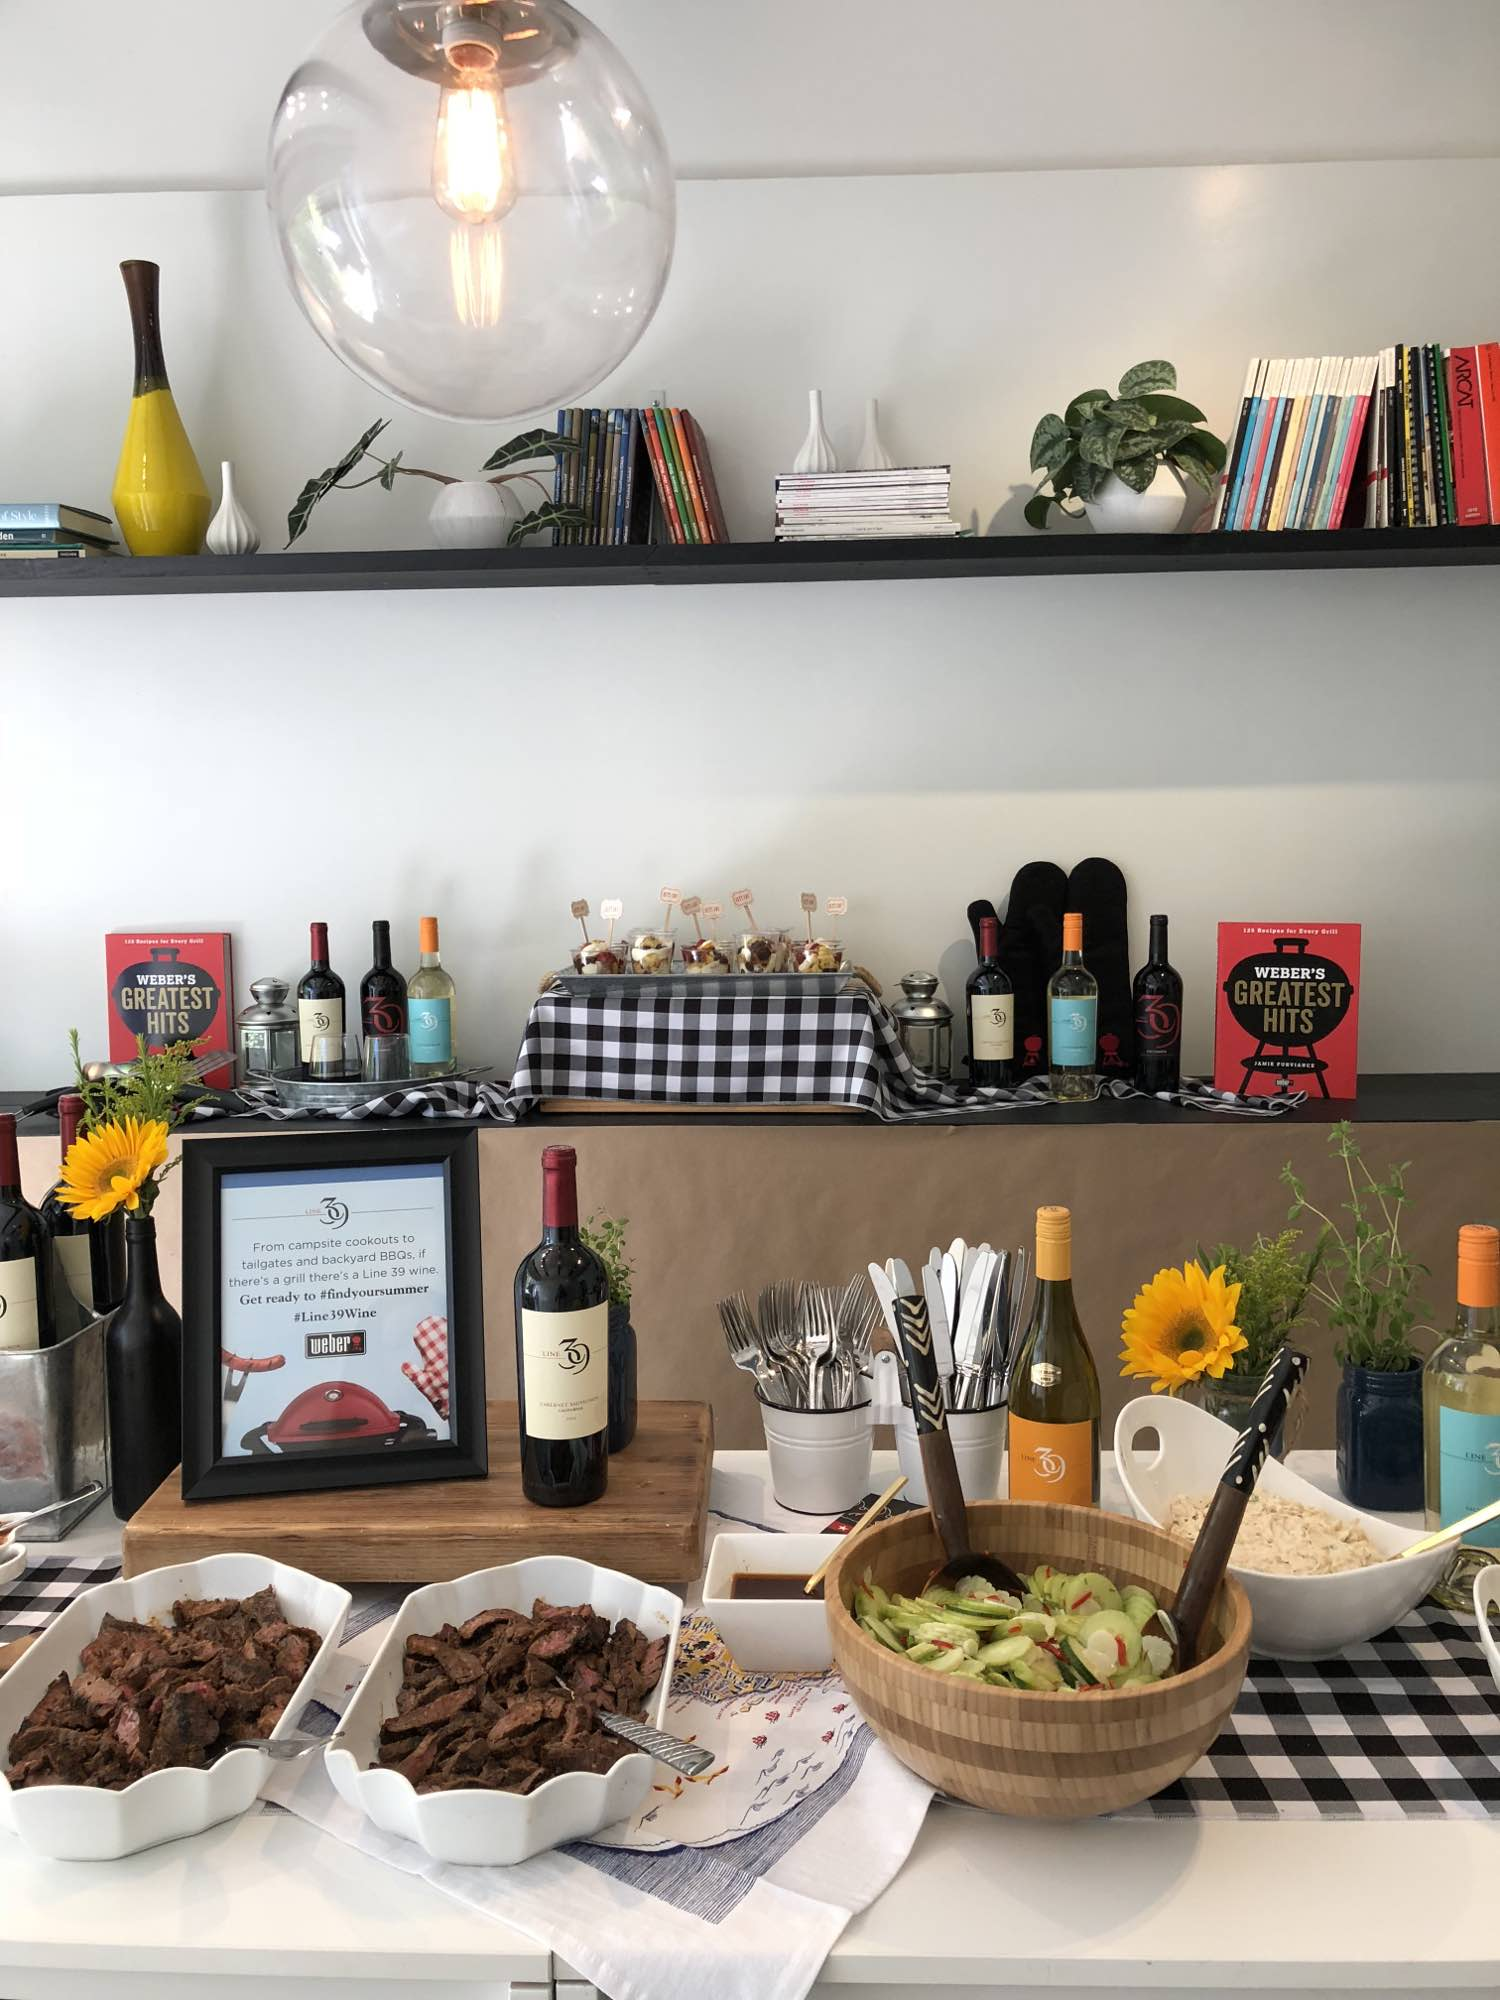 Summer Grill & Chill with Line 39 Wine - Summer BBQ Spread